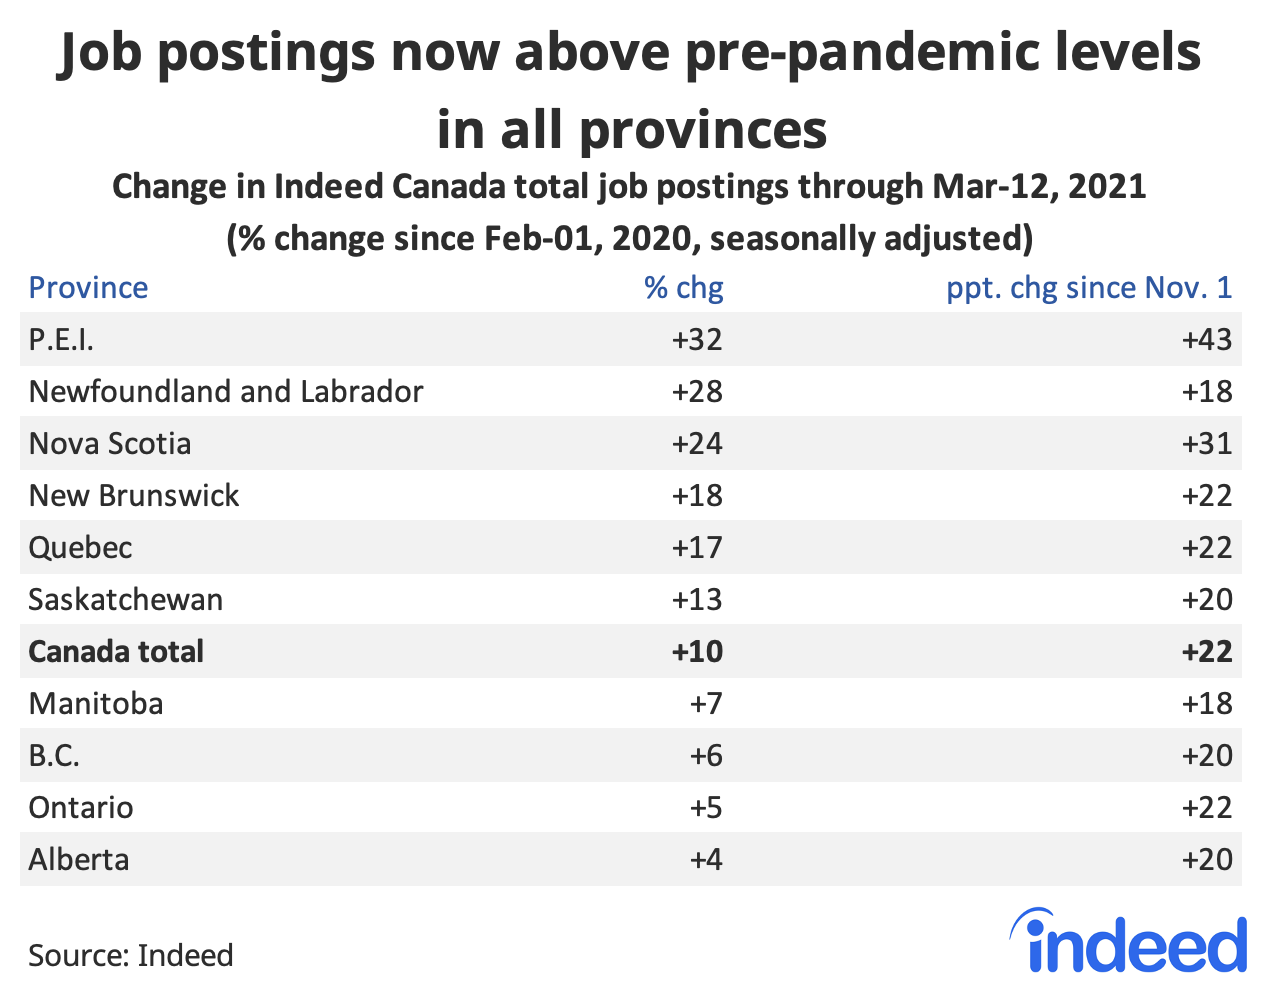 Table showing job postings now above pre-pandemic levels in all provinces